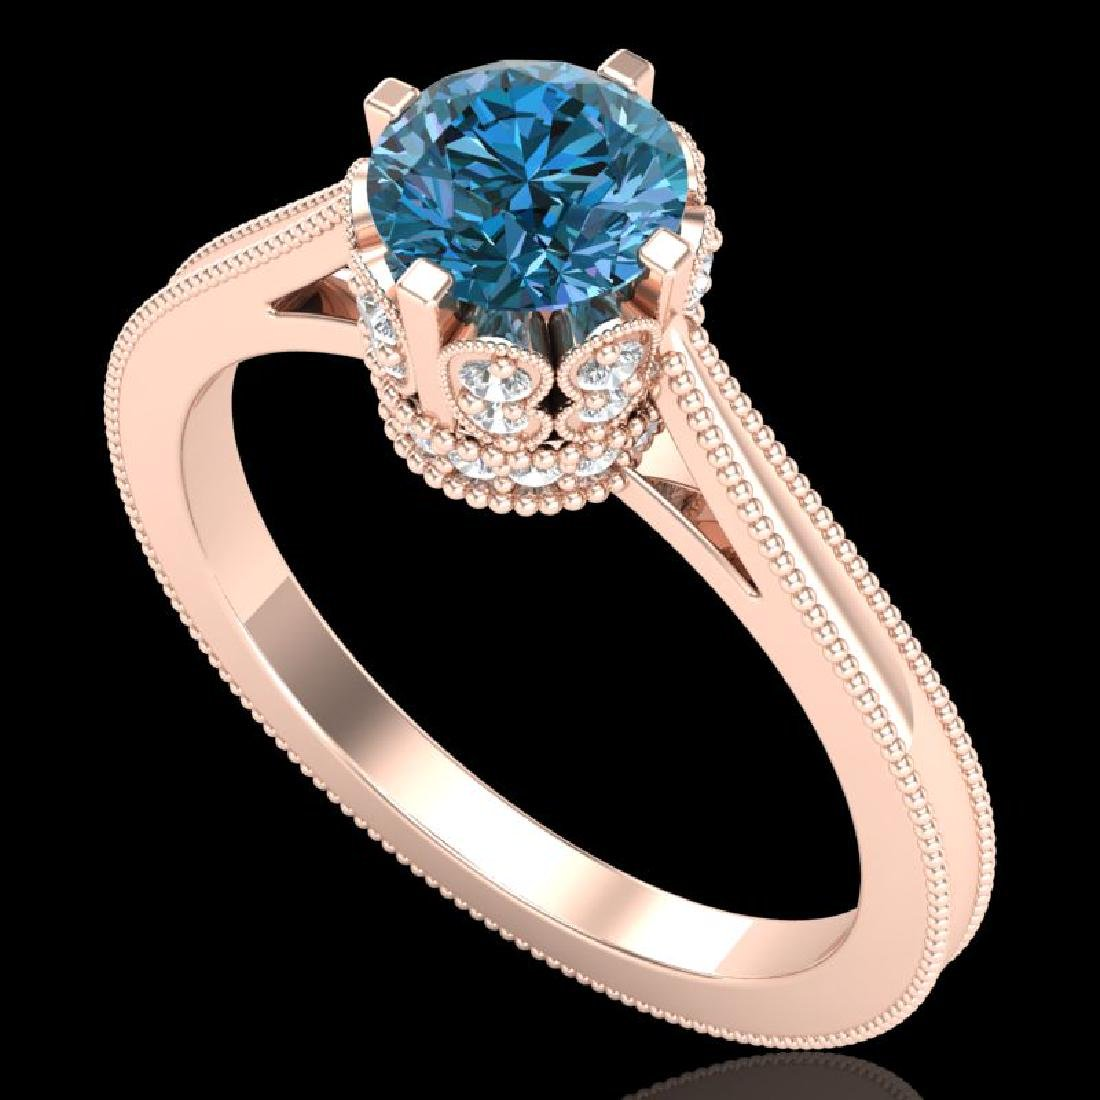 1.14 CTW Fancy Intense Blue Diamond Solitaire Art Deco